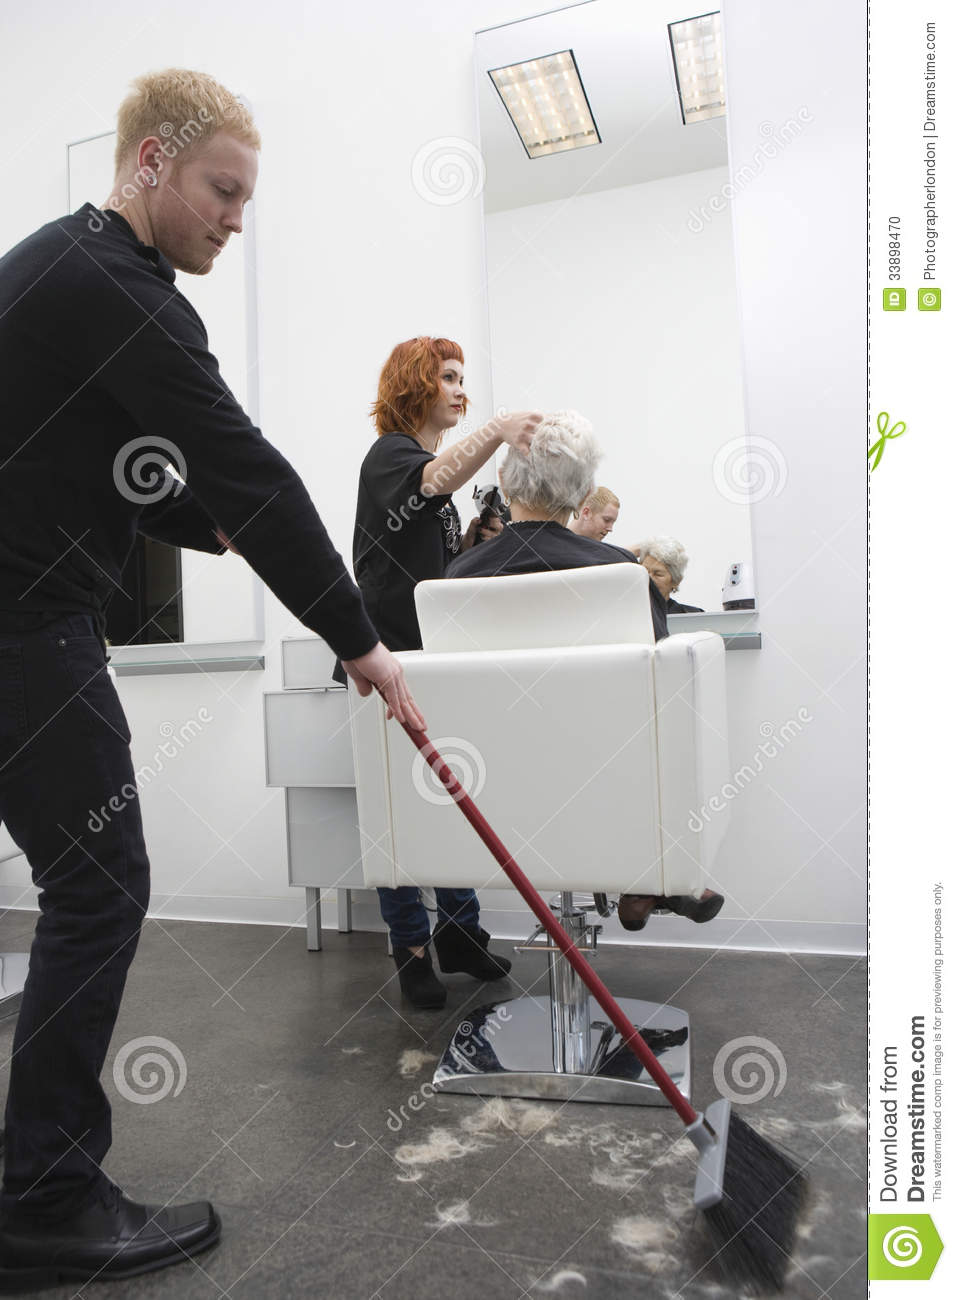 Man Sweeping While Hairdresser Giving Haircut To Senior Woman Stock Photo  Image 33898470